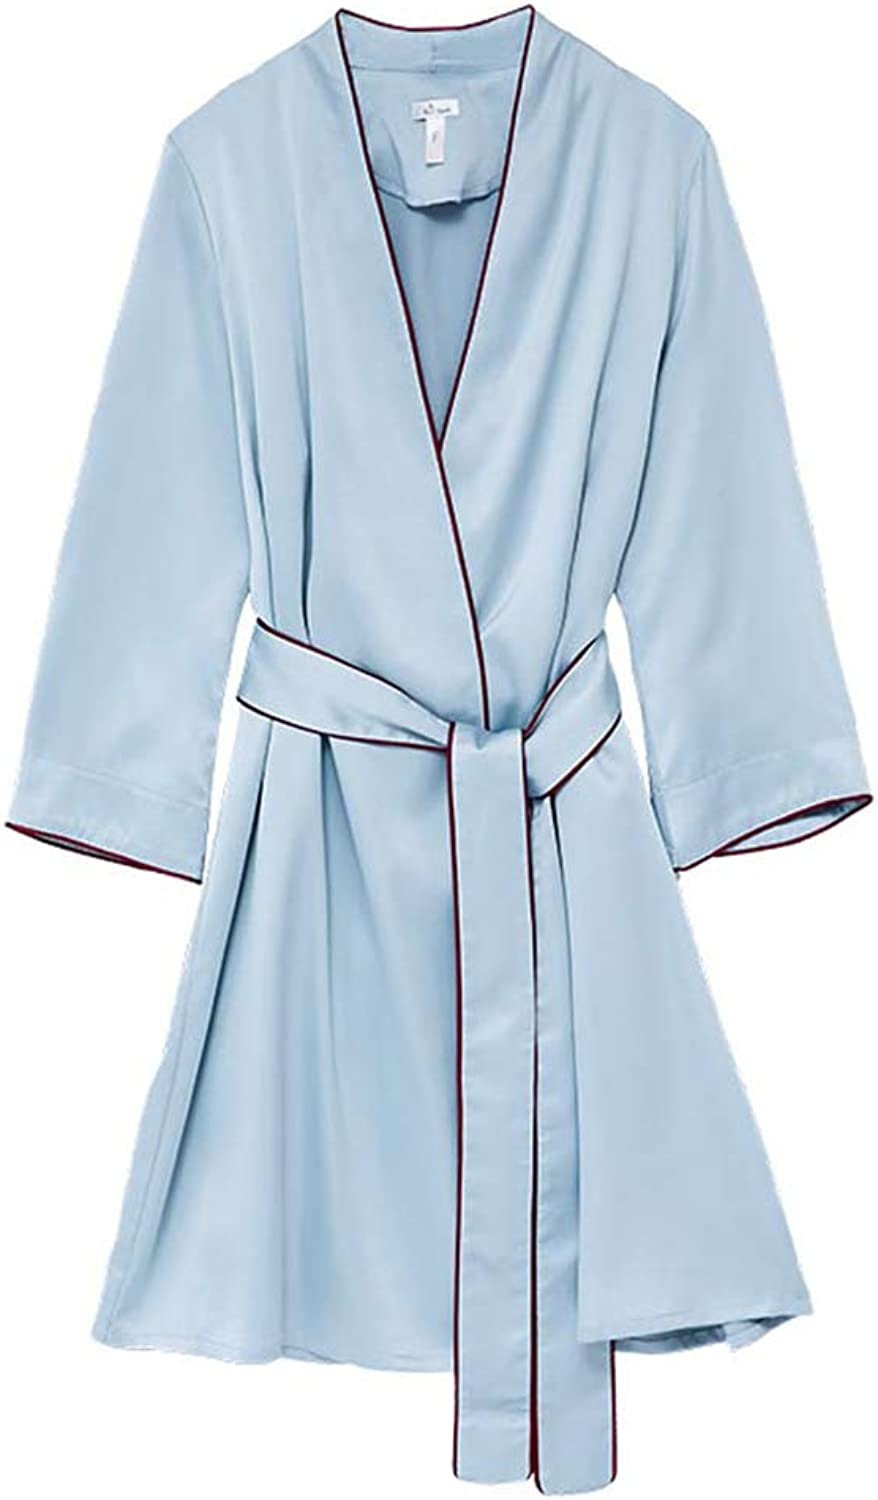 Bathrobe Dressing Gown Sexy Luxury Nightgown LongSleeved Bathrobe Long Section Home Service Pajamas   Female   bluee